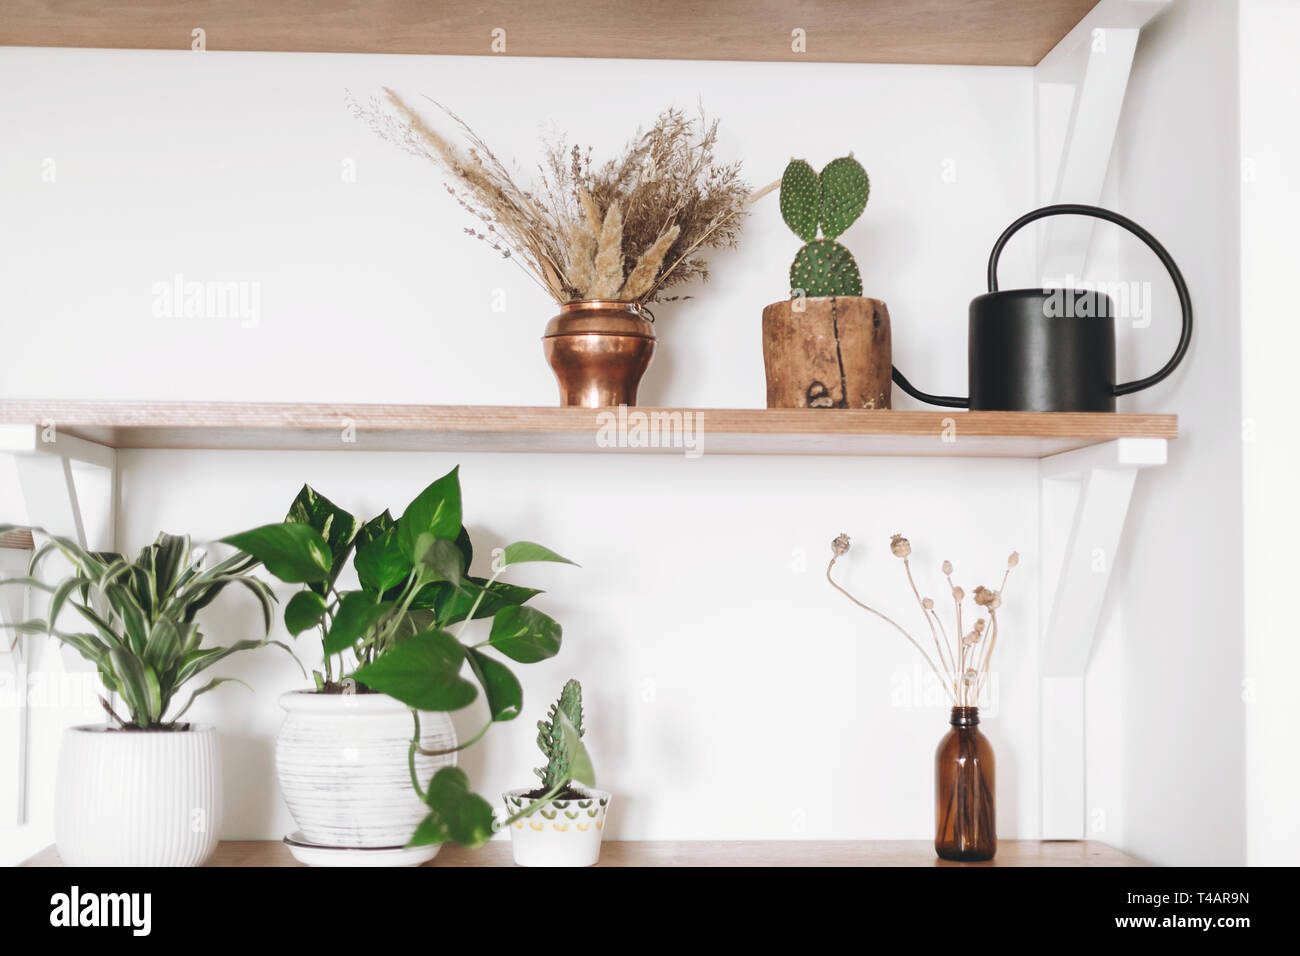 Stylish Wooden Shelves With Green Plants Black Watering Can